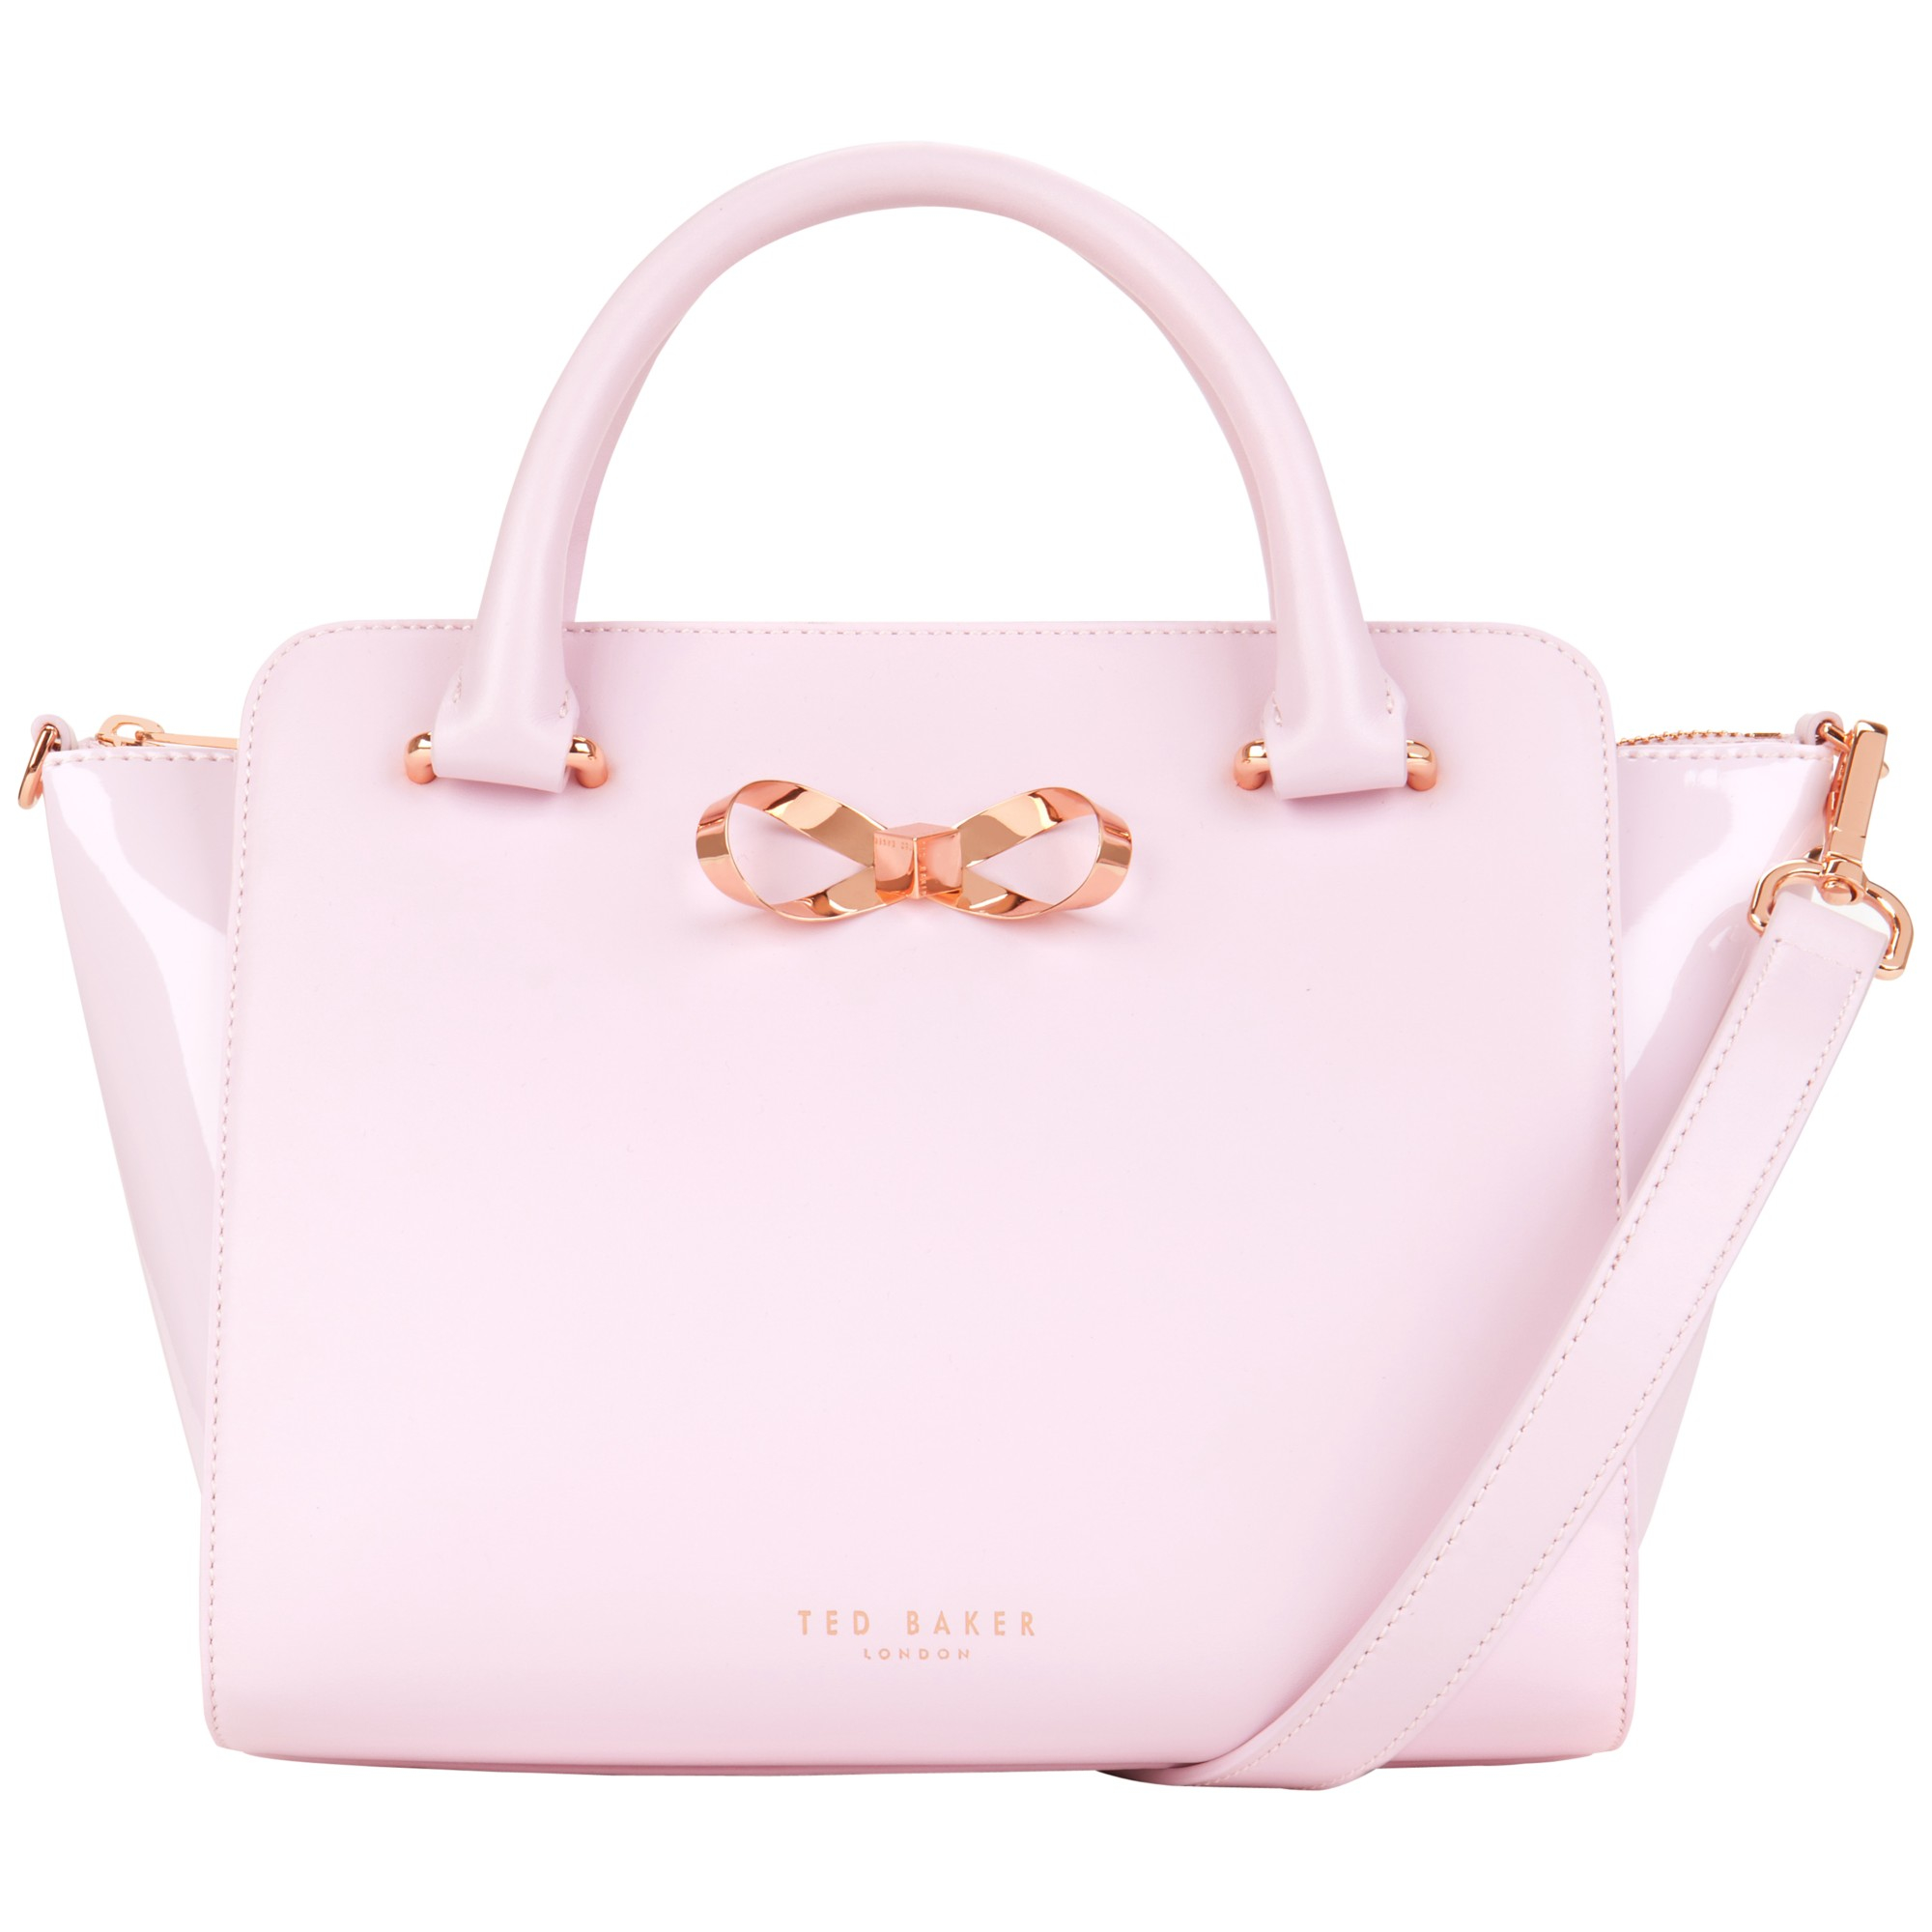 7c9c74bff8d8a Ted Baker Paiton Bow Leather Tote Bag in Pink - Lyst